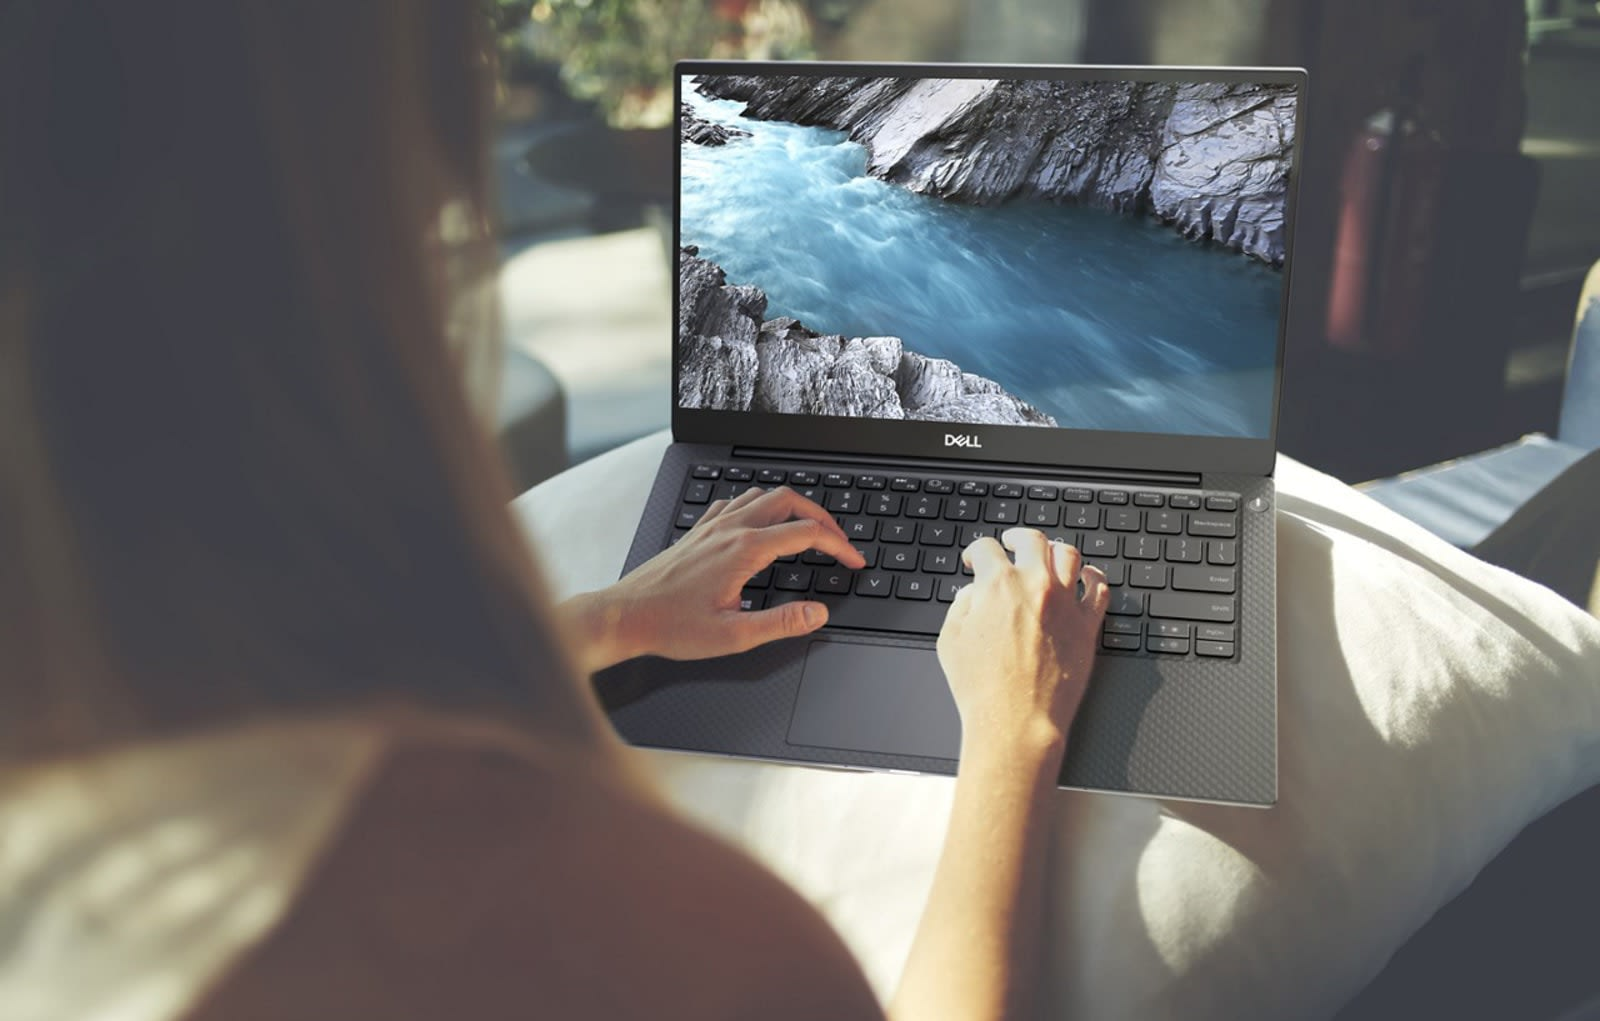 Dell Xps 13 2020 Review.Dell S Xps 13 Now Comes With The Latest Intel 10th Gen